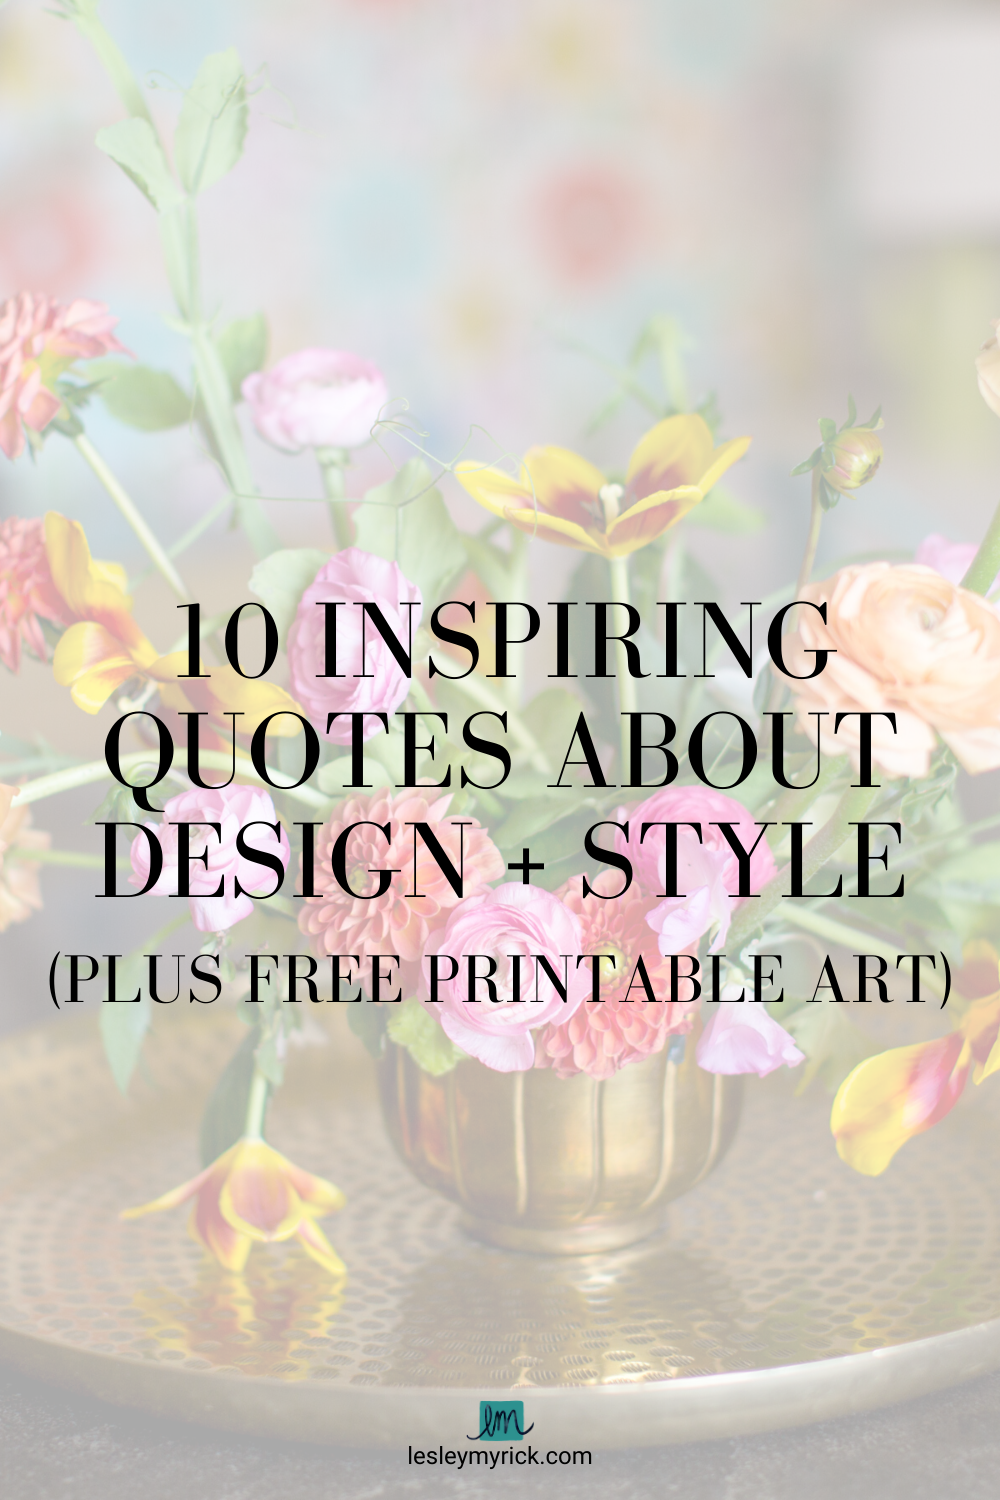 10 Inspiring Quotes About Design (Plus FREE Printable Art)